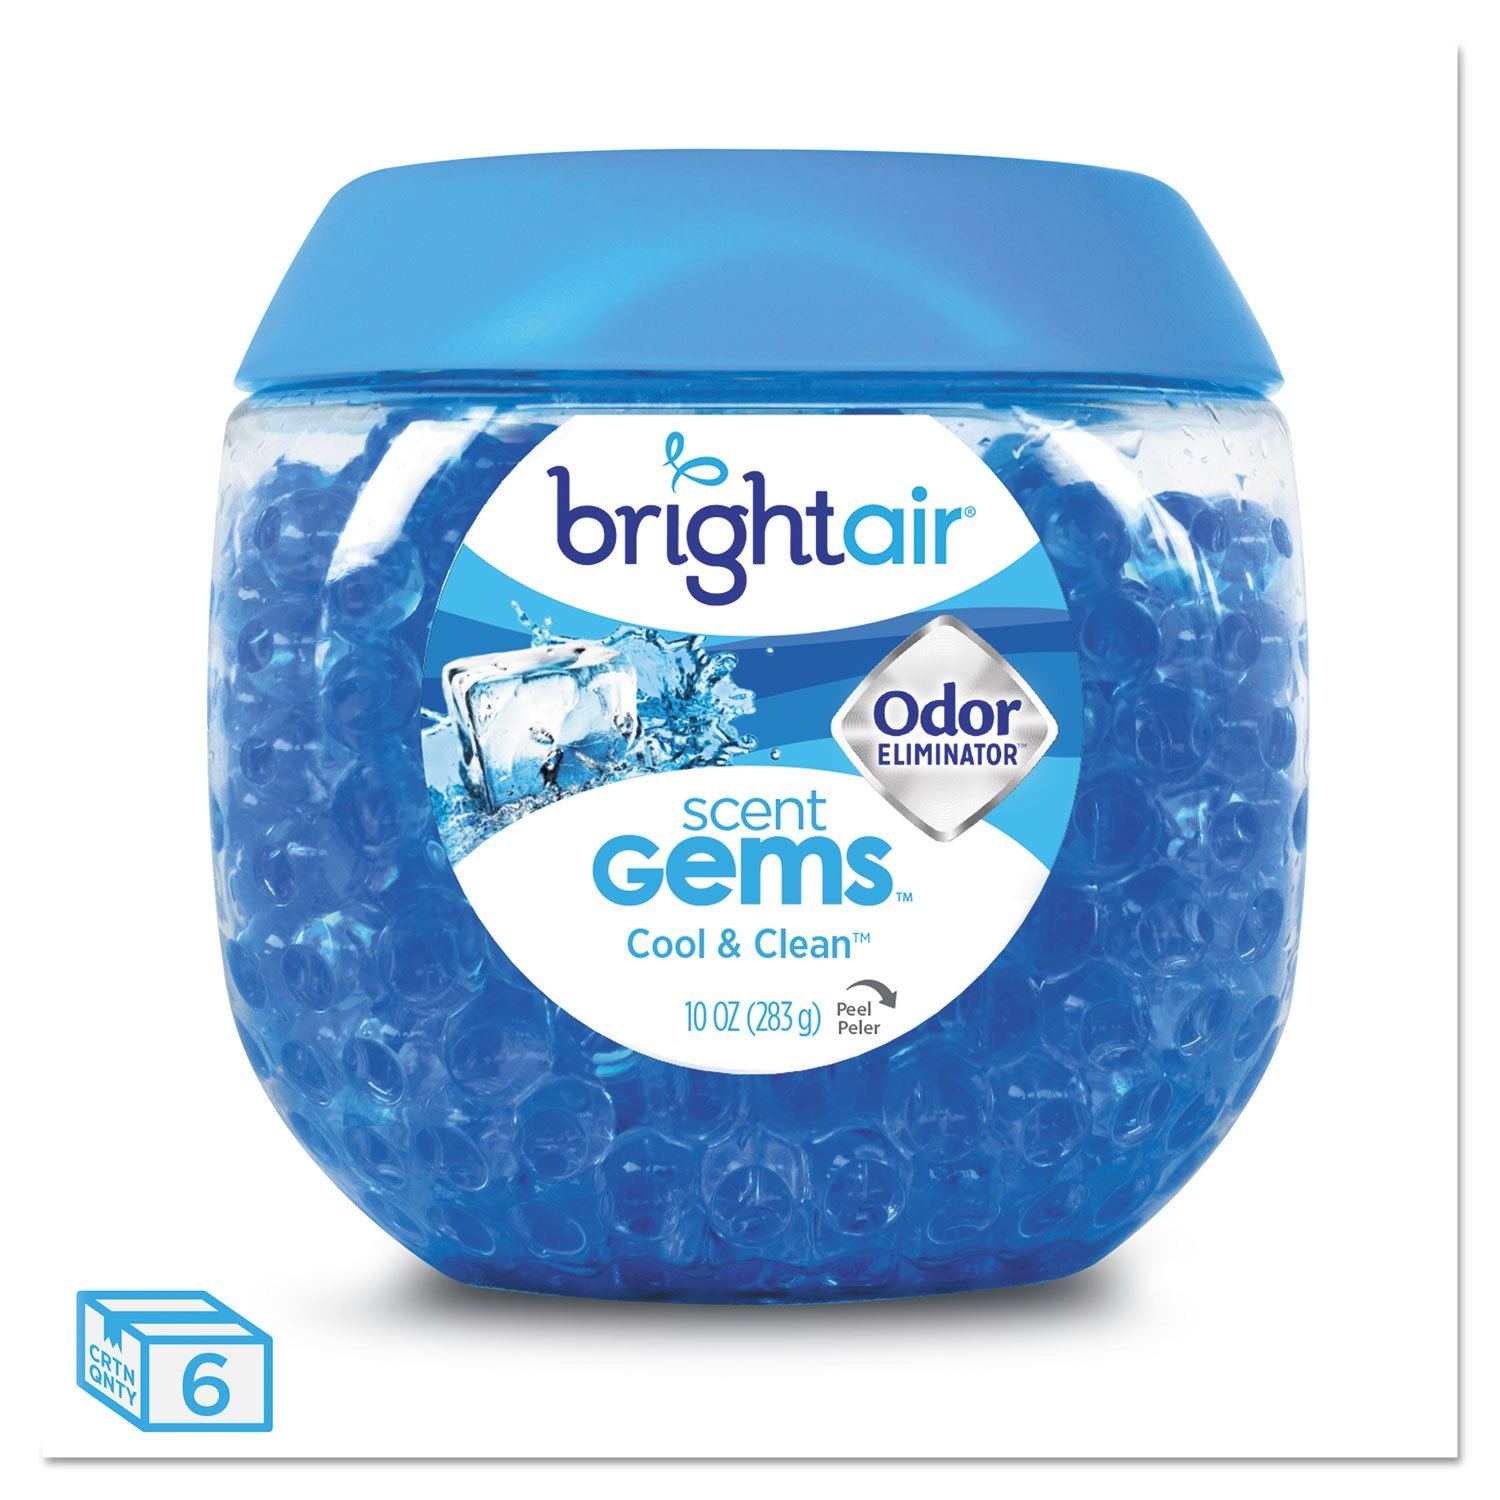 BRIGHT Air 900228CT Scent Gems Odor Eliminator, Cool and Clean, Blue, 10 oz (Case of 6)